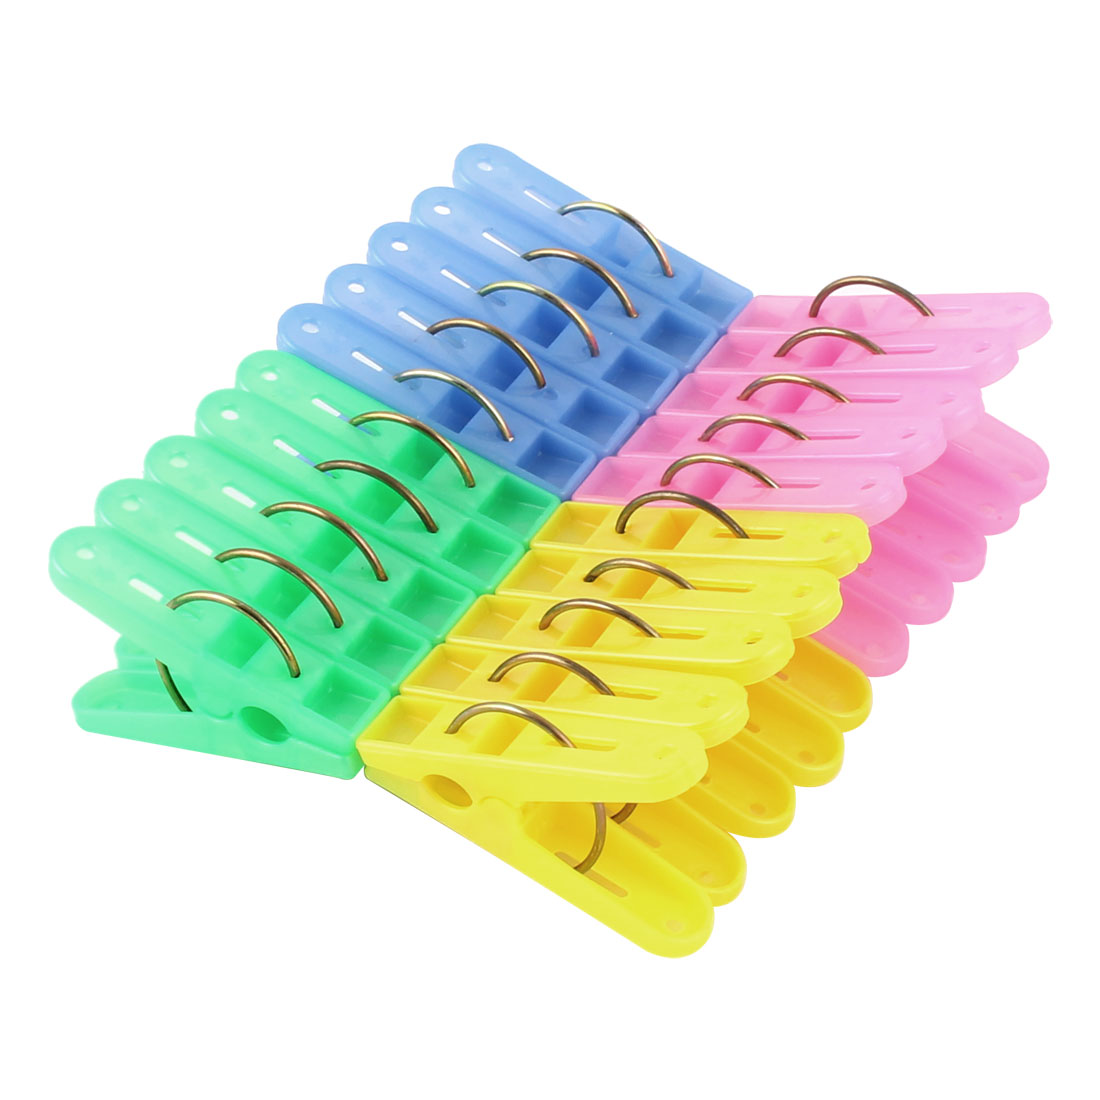 Plastic Laundry Clothes Drying Pegs Clips Pins Clothespins Assorted Color 20pcs